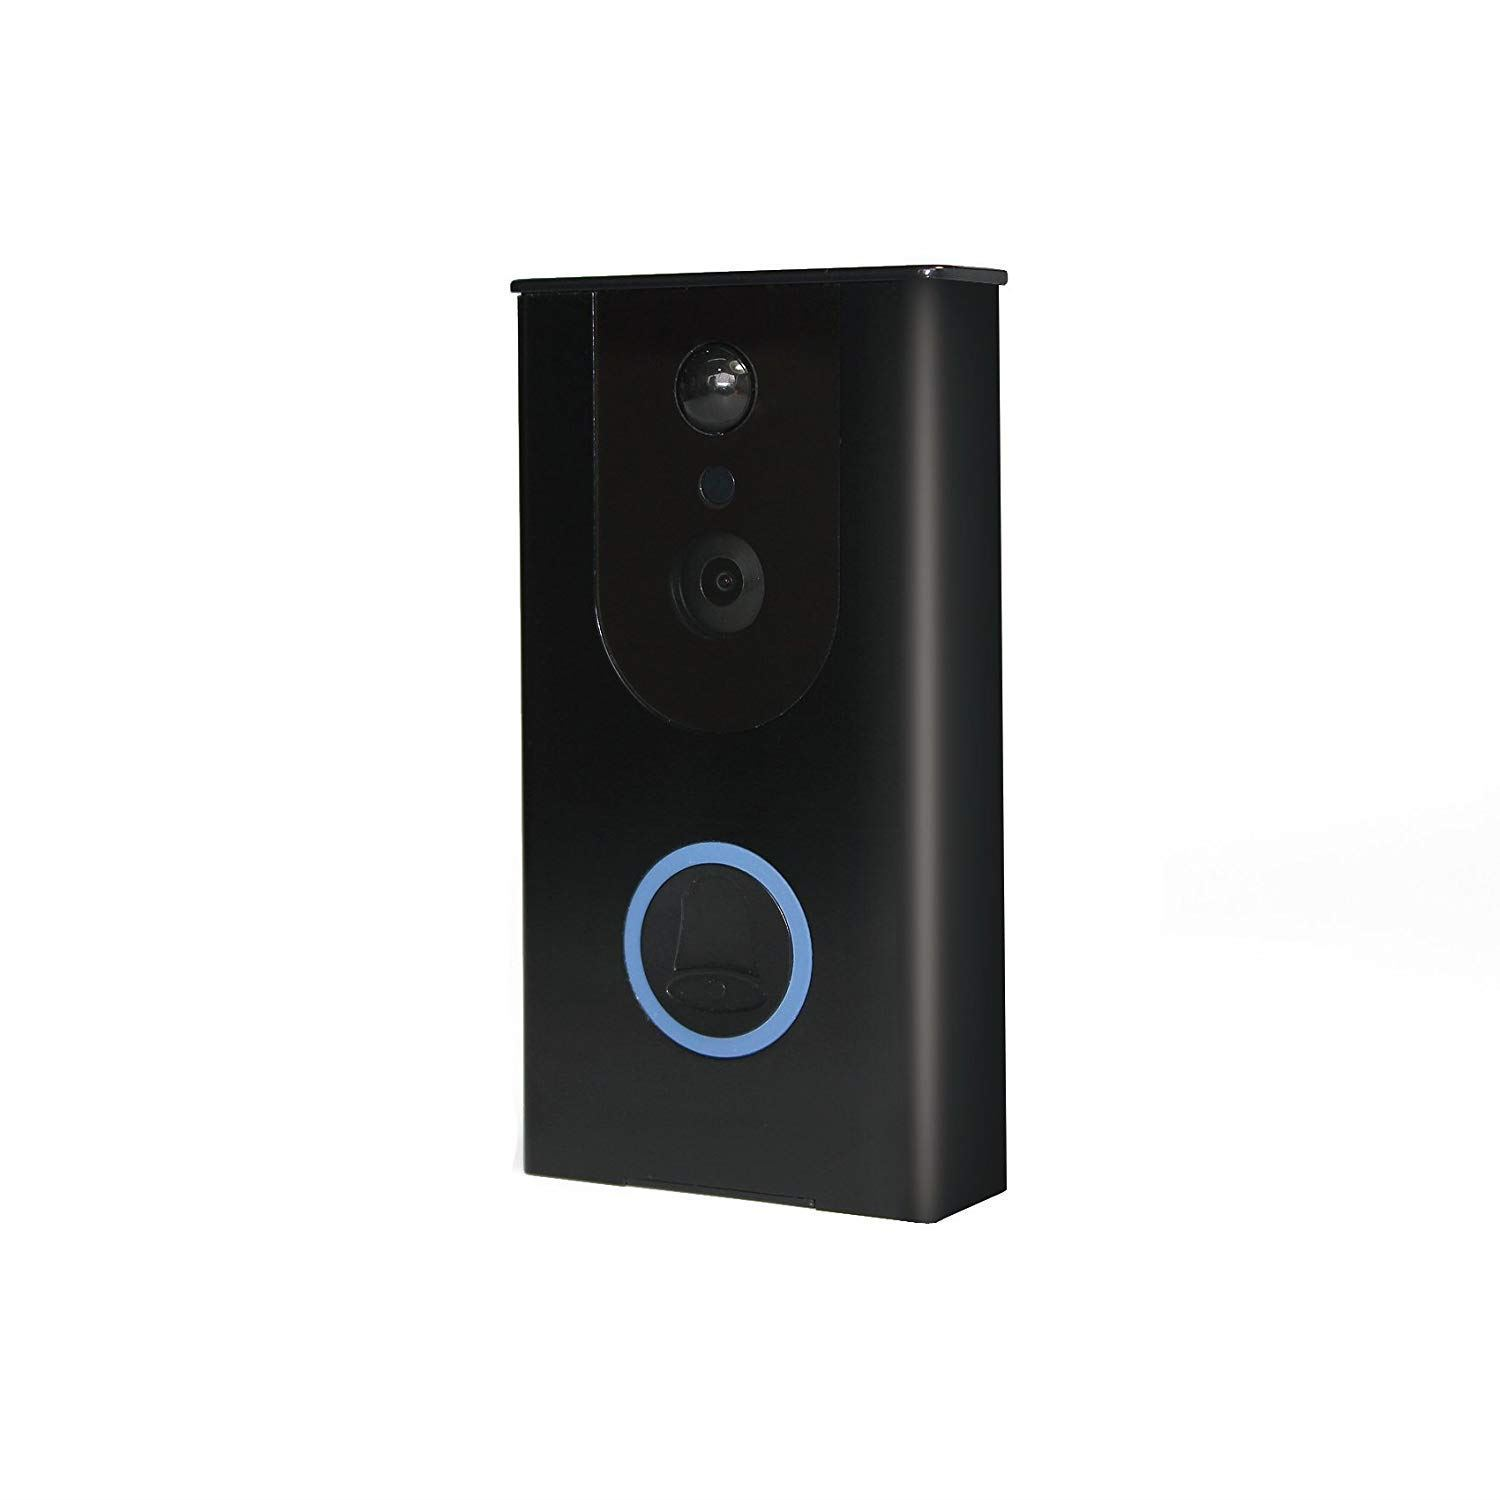 OYN-X Smart Video Wi-Fi Doorbell 720P  Camera Intercom IP66  for IOS and Android